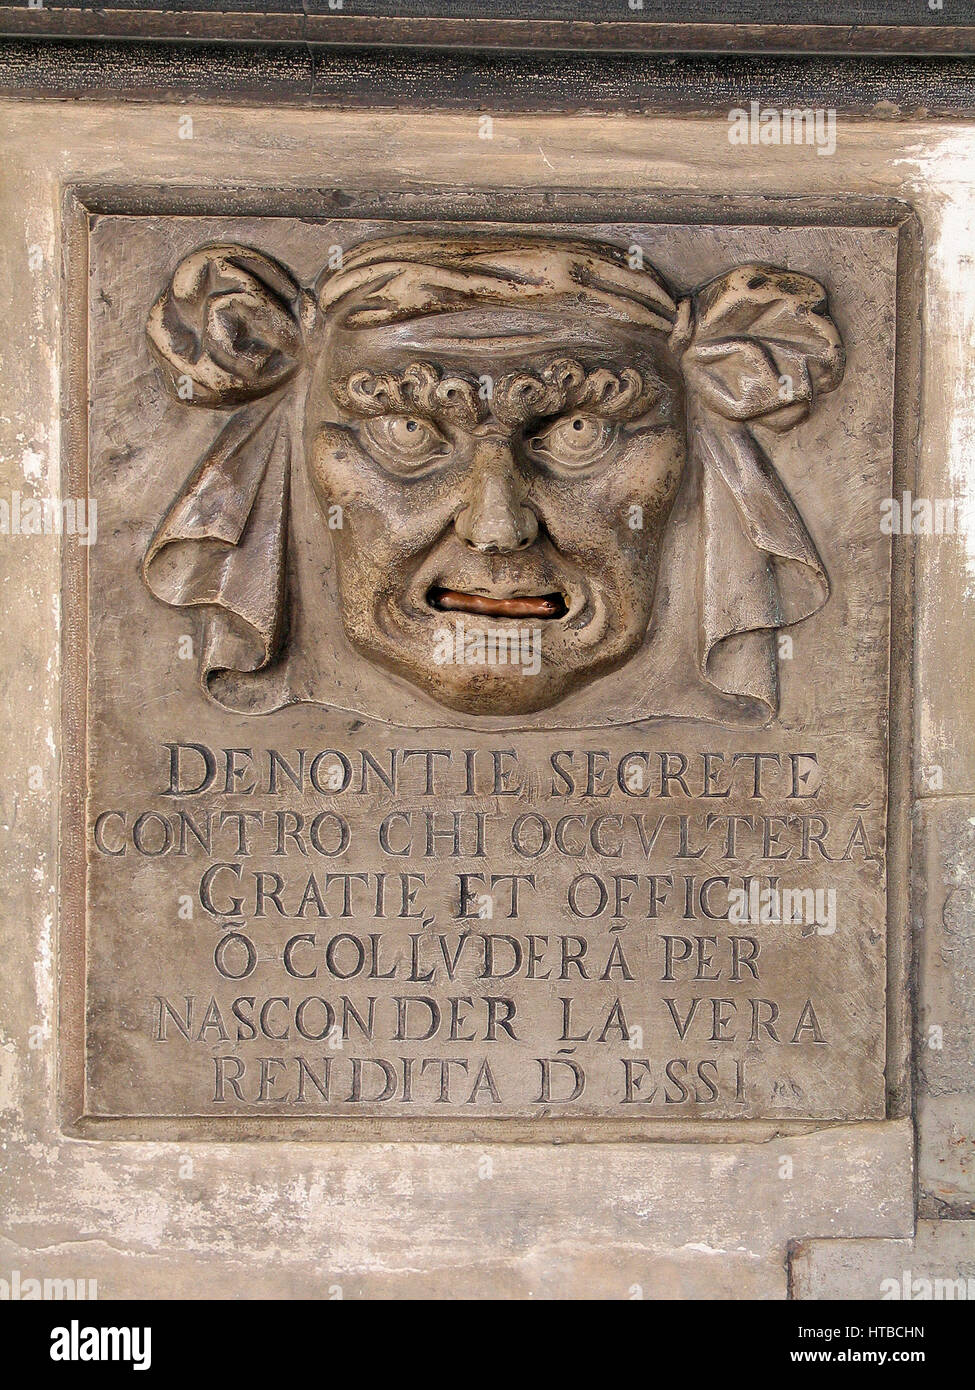 Denontie Secrete, mailbox for secret denunciations at the Palace of Doges, Venice, Italy Stock Photo